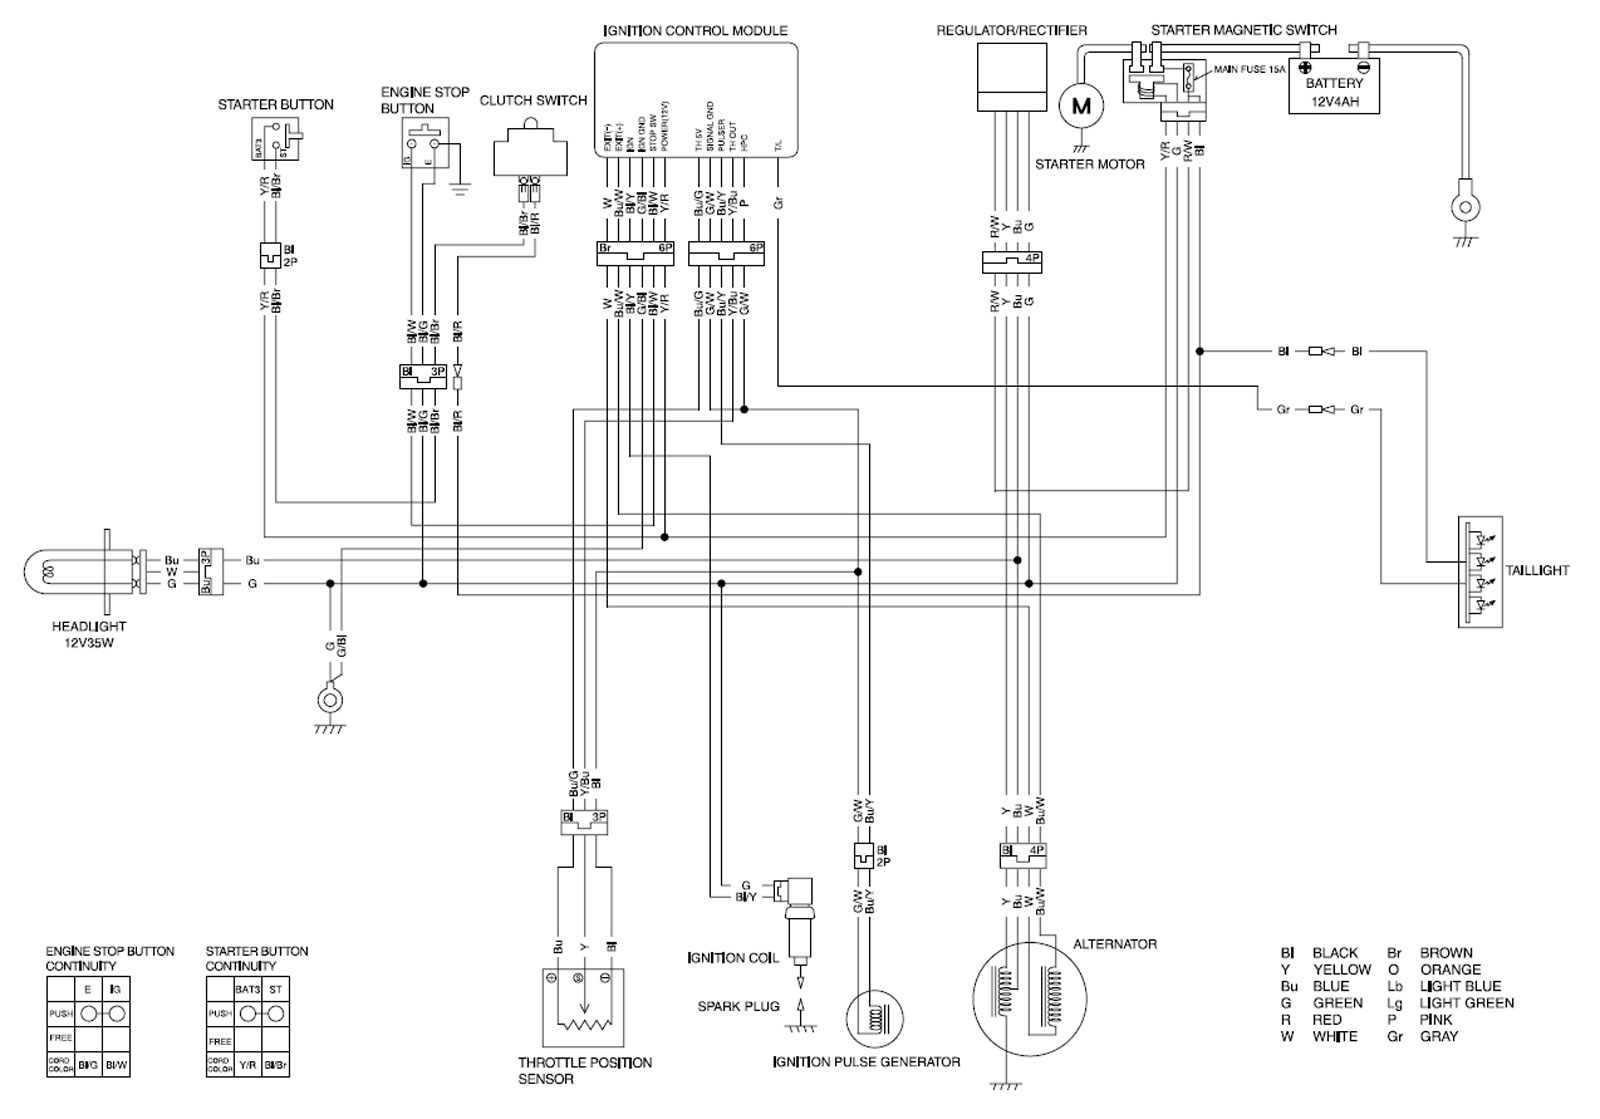 honda crf250x wiring diagram honda wiring diagrams instruction crf250x wiring diagram at reclaimingppi.co